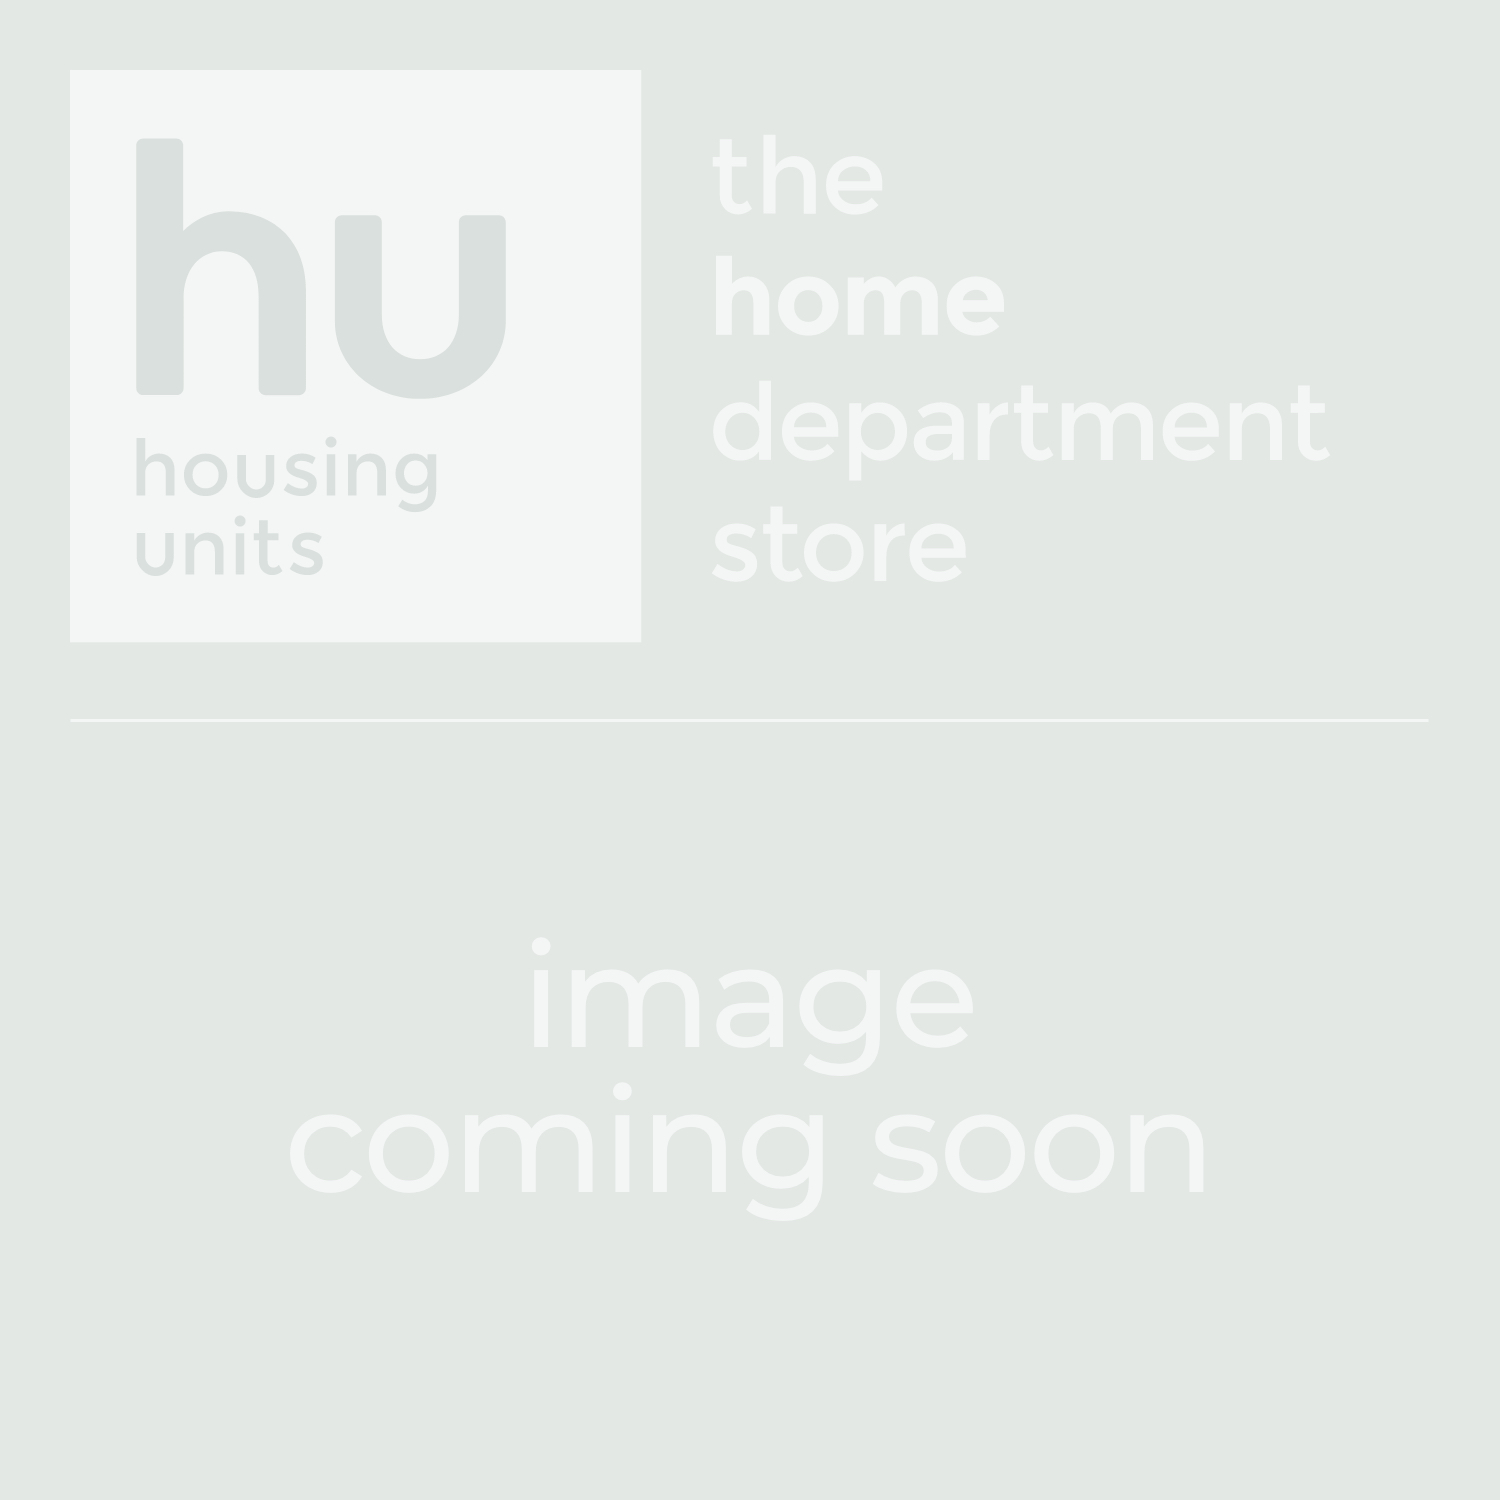 Chollerton Chrome Inset Electric Fire - Lifestyle   Housing Units